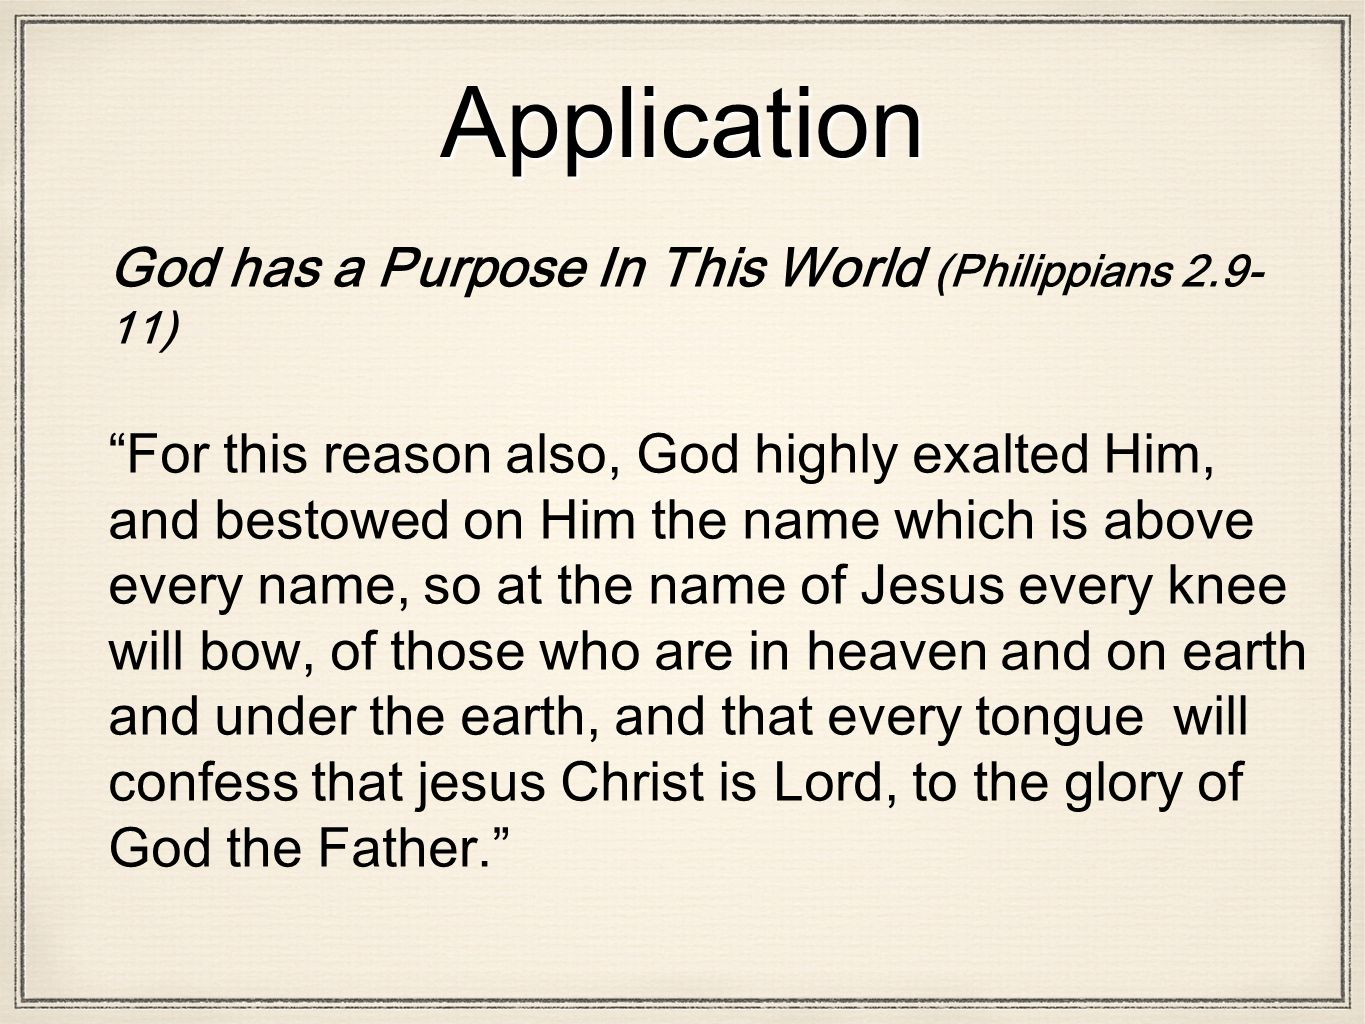 Application God has a Purpose In This World (Philippians 2.9- 11) For this reason also, God highly exalted Him, and bestowed on Him the name which is above every name, so at the name of Jesus every knee will bow, of those who are in heaven and on earth and under the earth, and that every tongue will confess that jesus Christ is Lord, to the glory of God the Father.